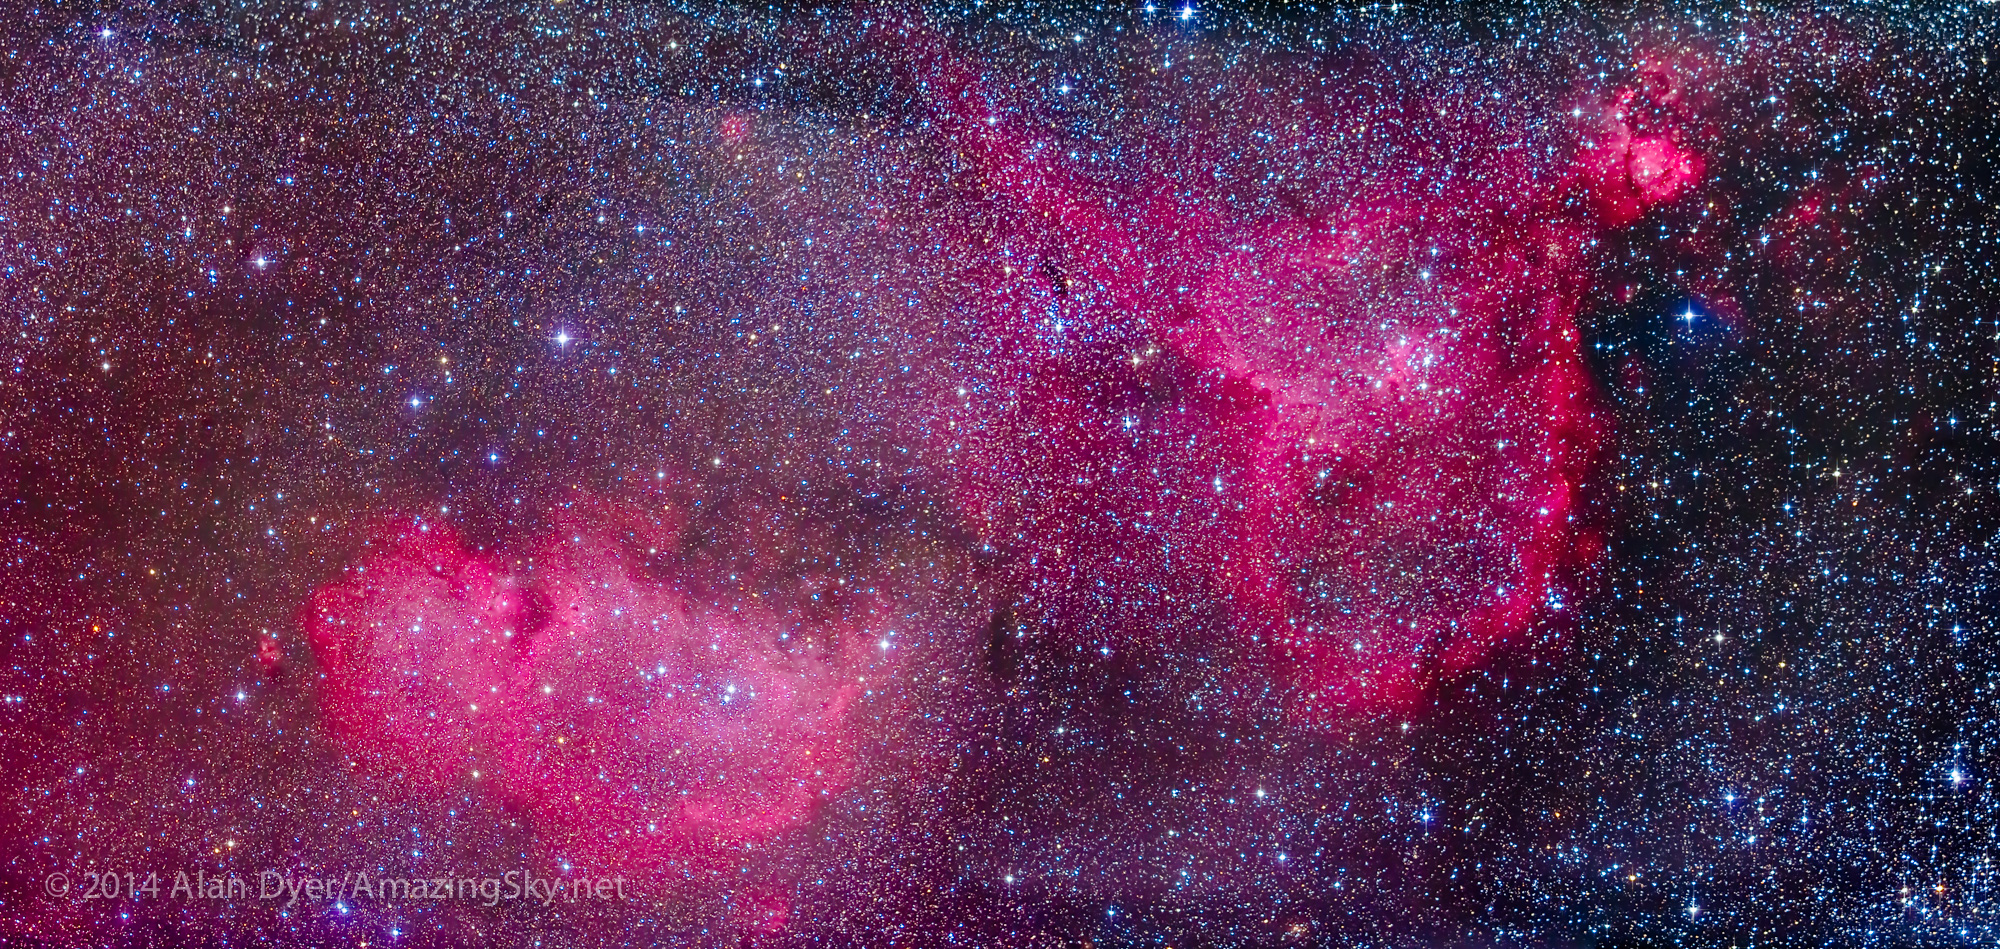 Heart & Soul Nebulas (IC 1805 and IC 1848) in Cassiopeia